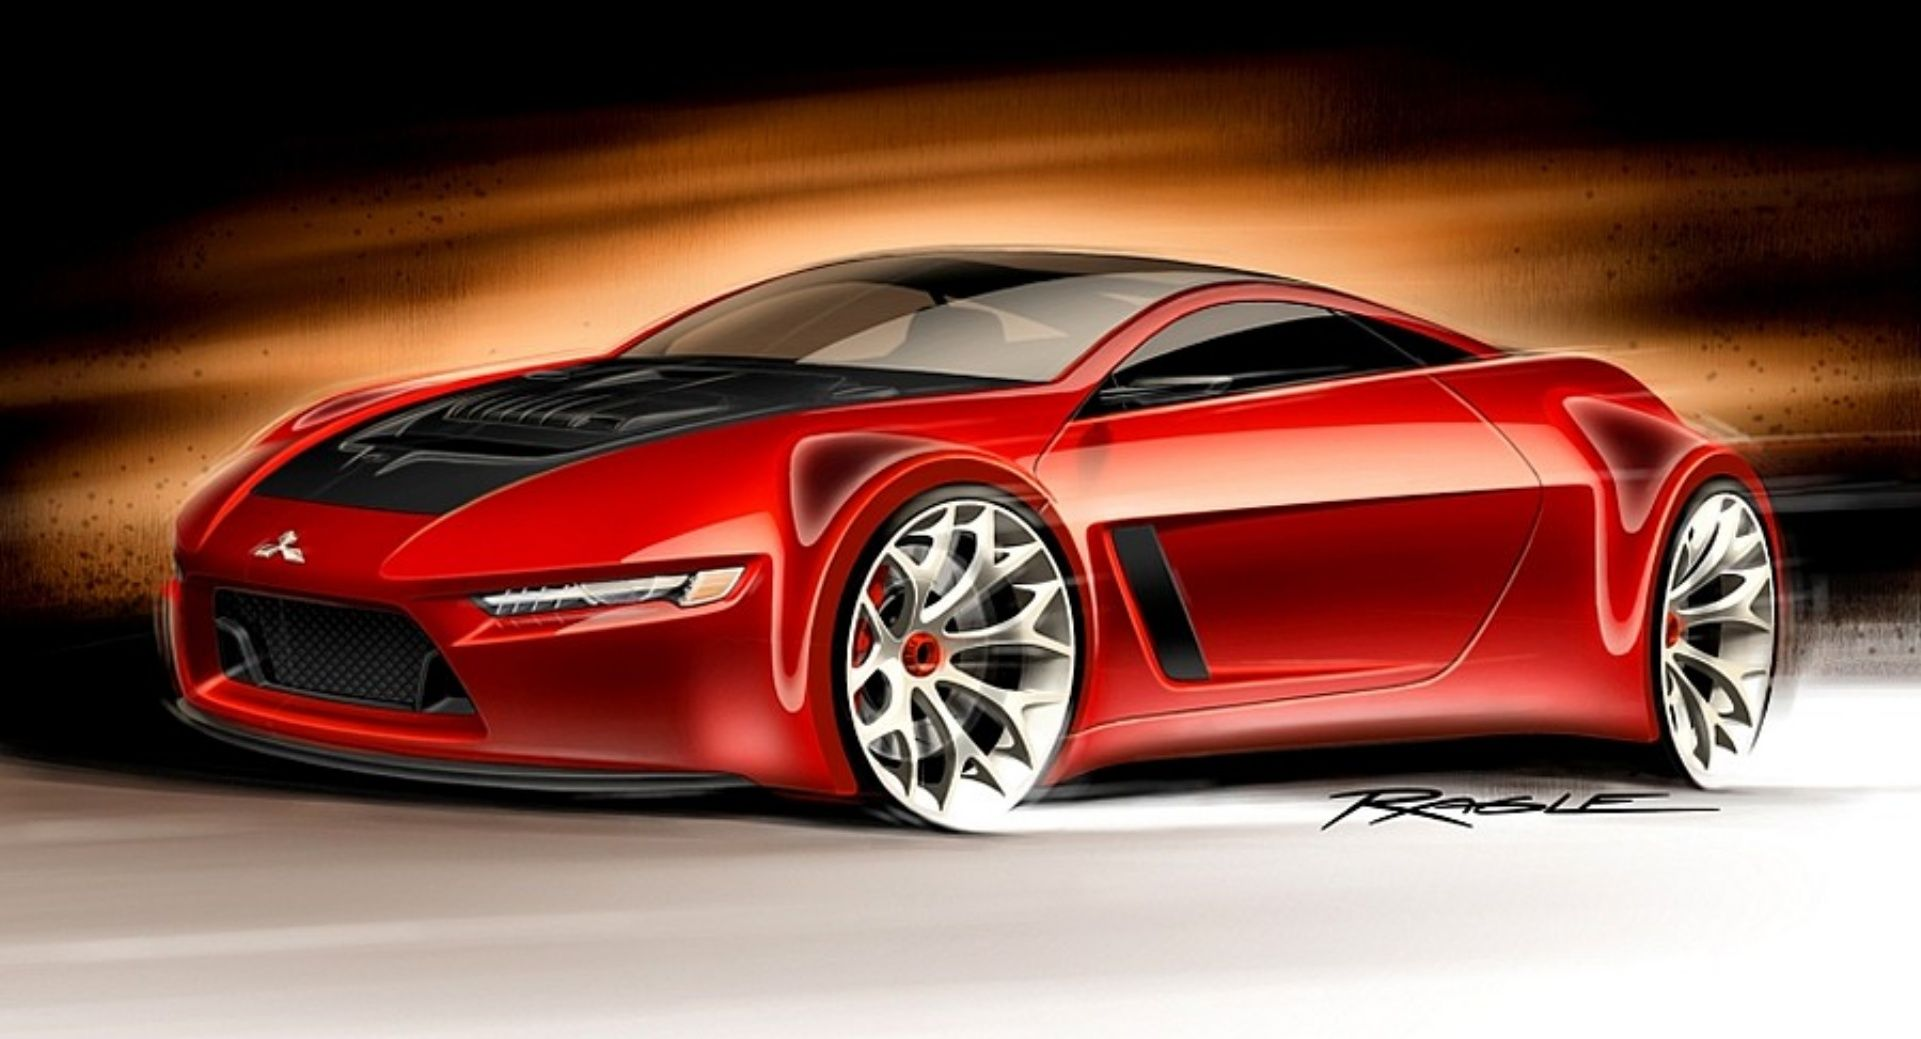 Mitsubishi Concept Sports Car Hd Latest Car